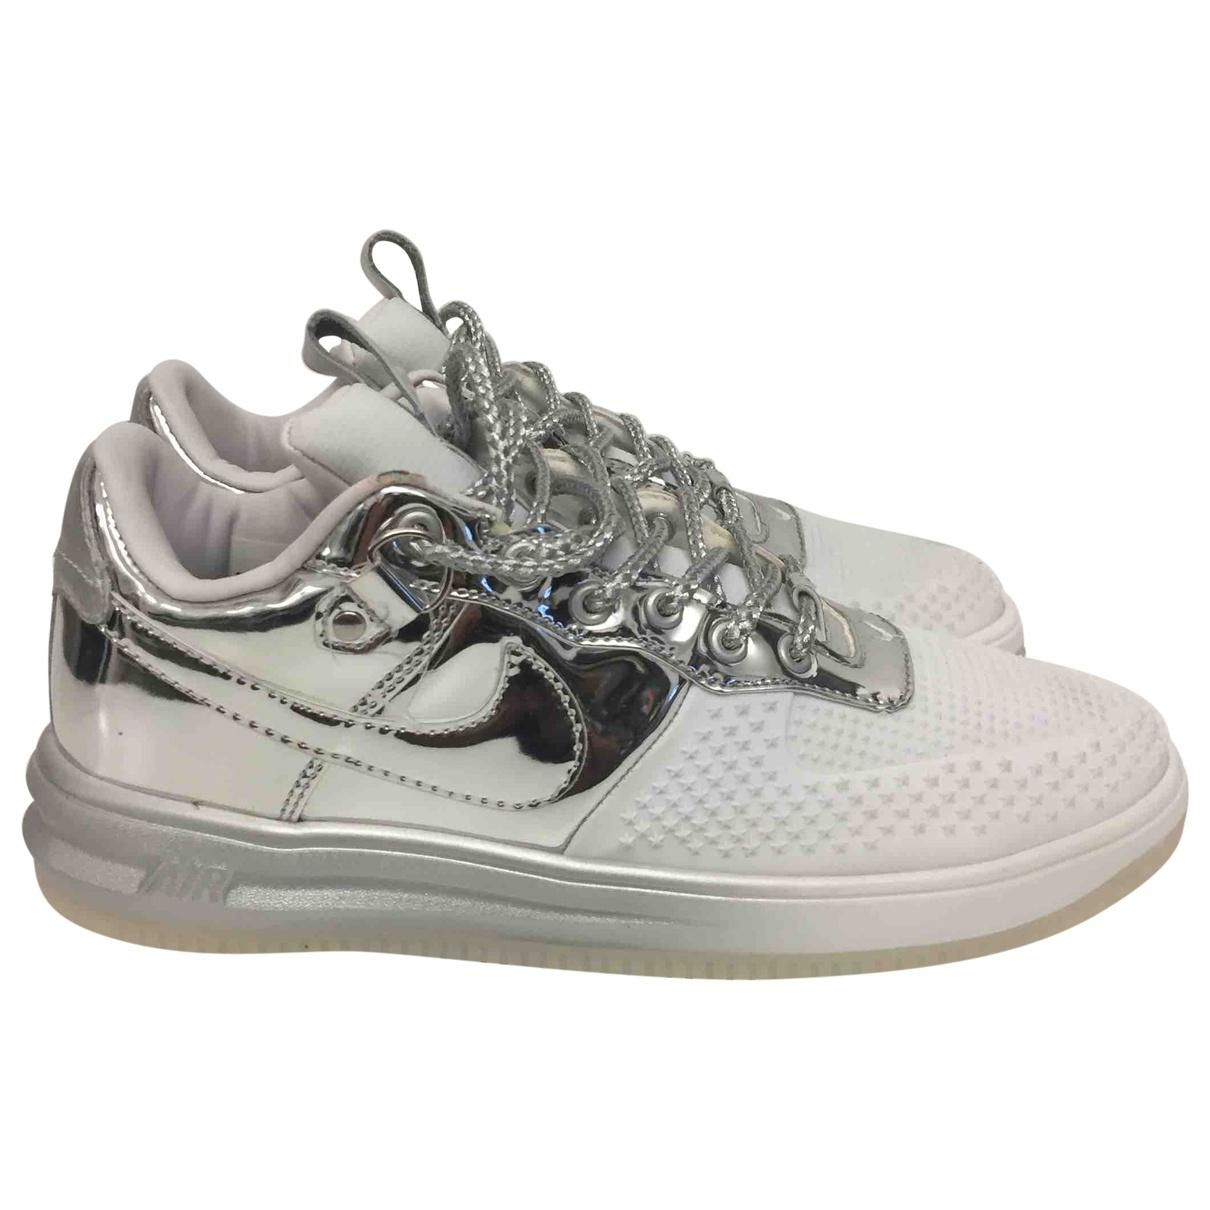 low priced ab239 f7f36 View fullscreen · Nike - Metallic Air Force 1 Silver Leather Trainers for  Men - Lyst